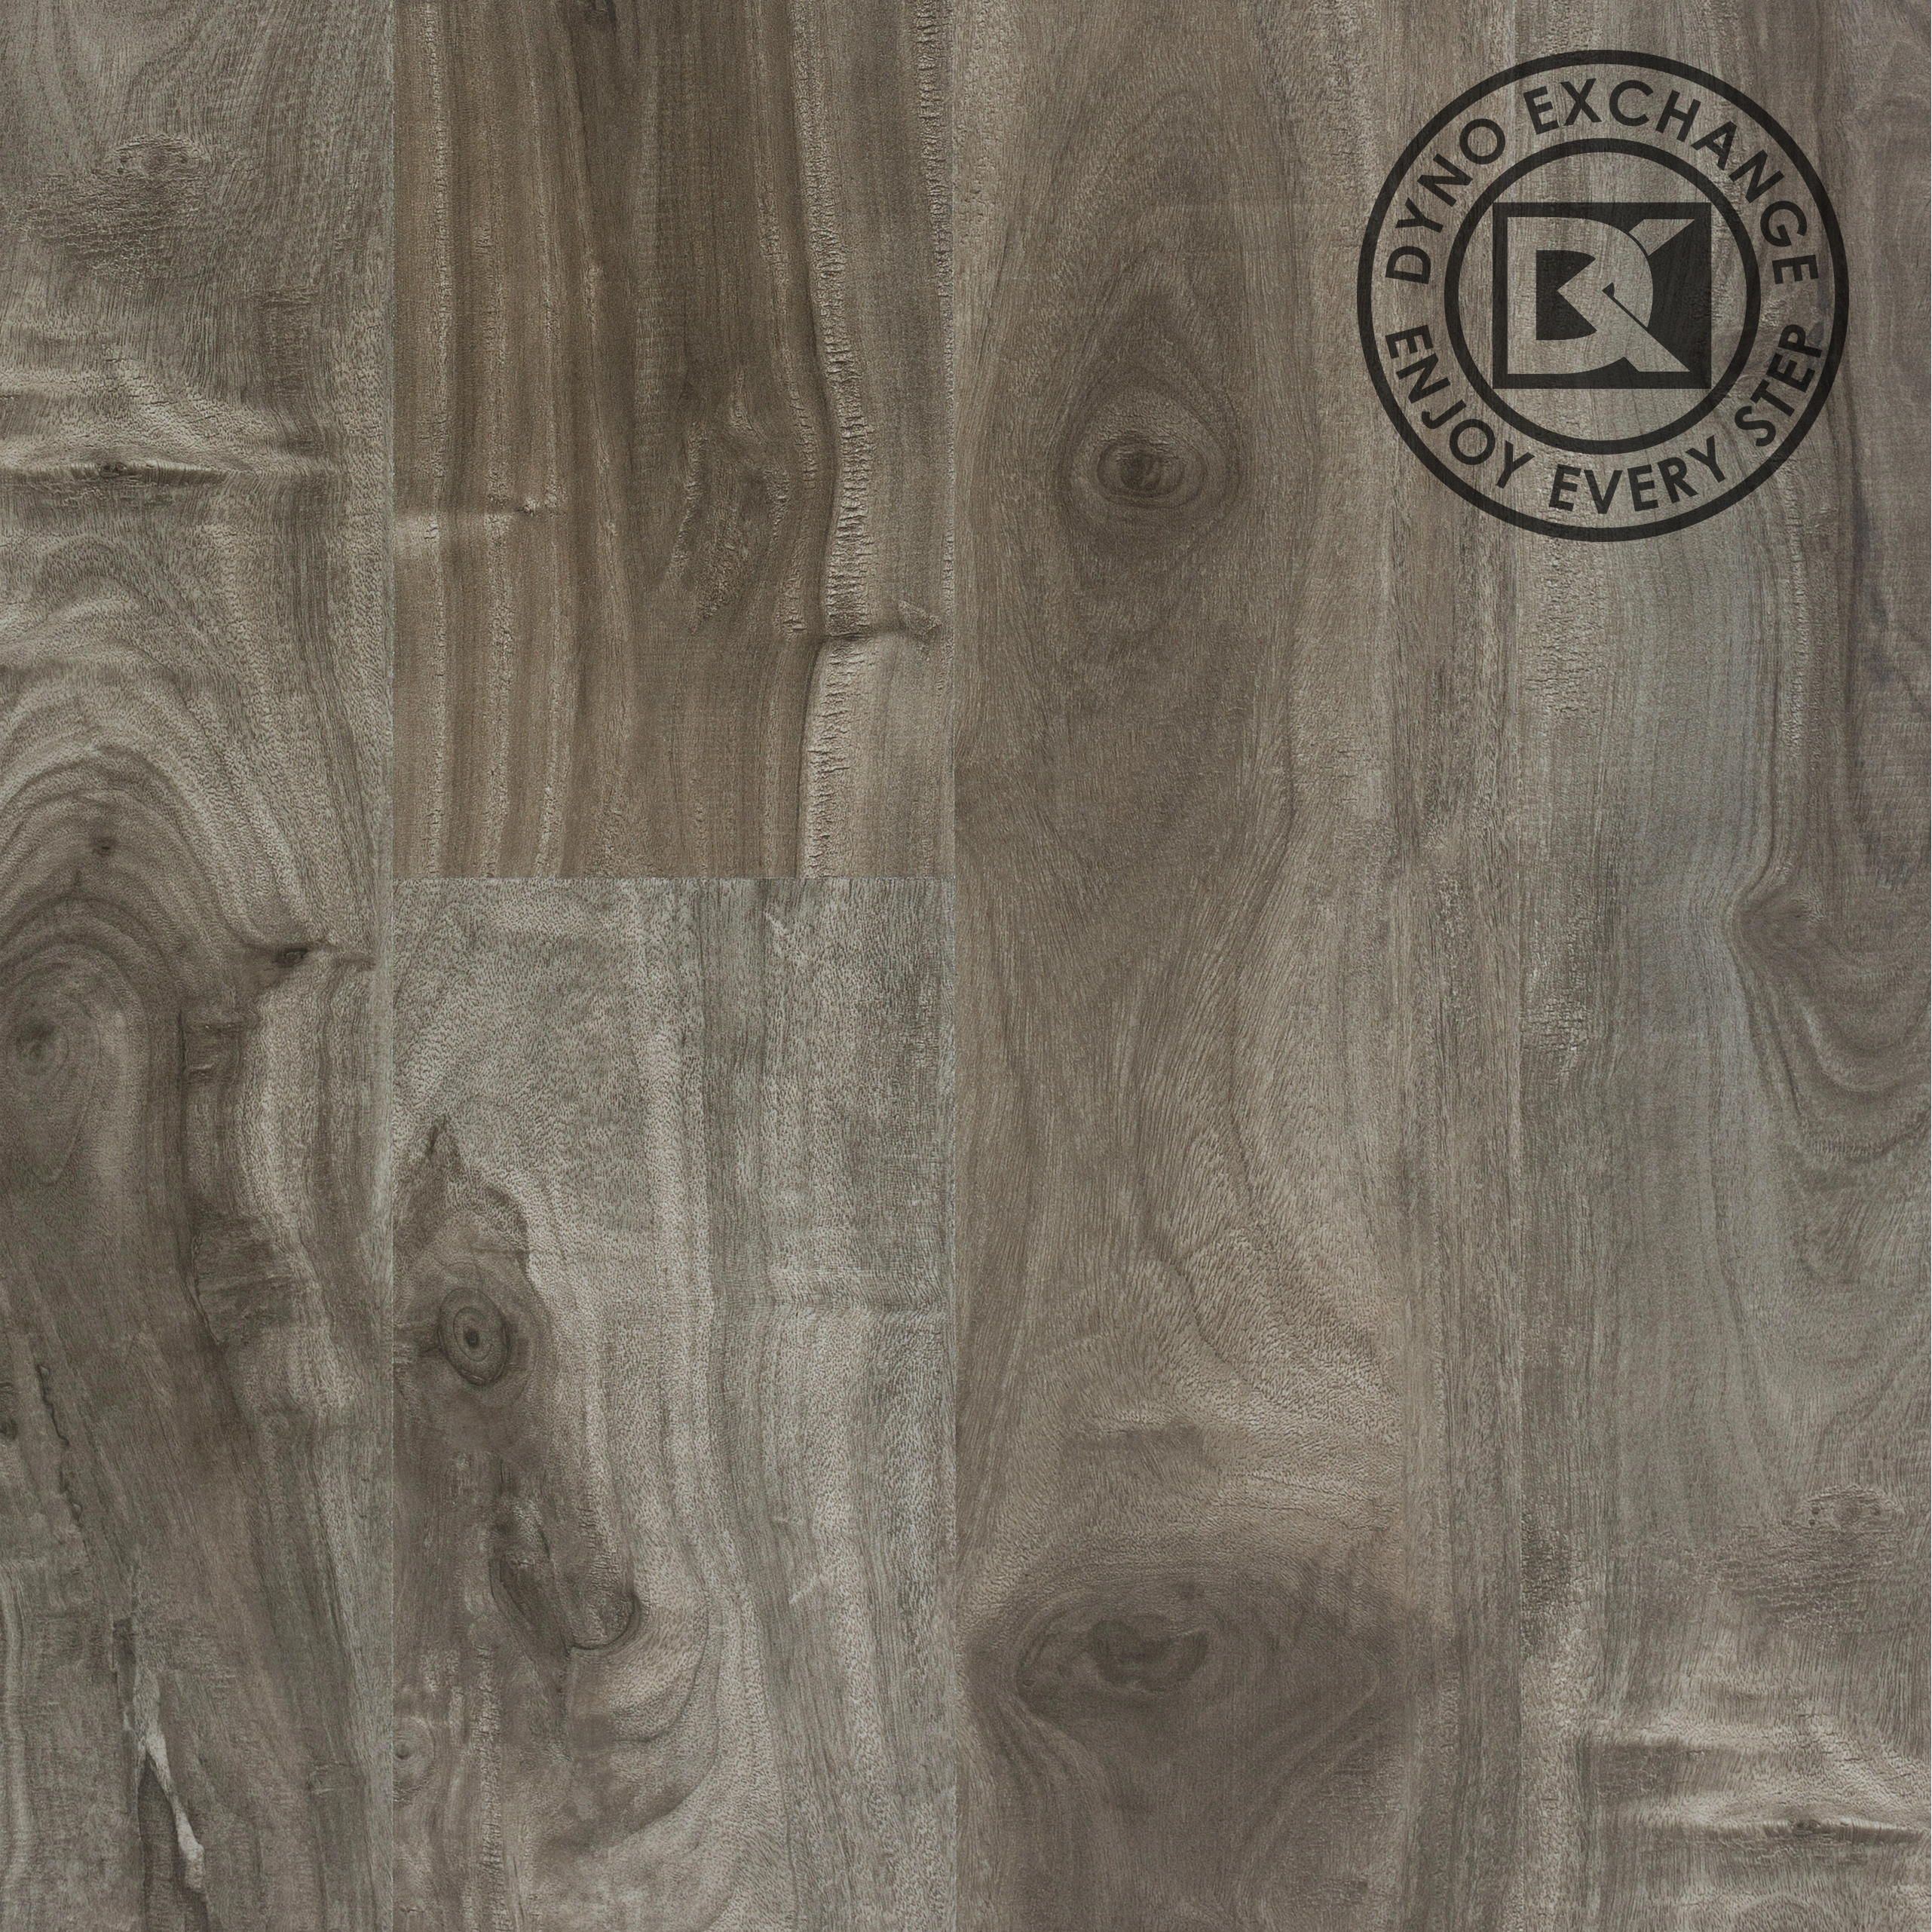 Dyno Exchange, Impact Collection Laminate Flooring, Scandian Grey (14.83 sqft/box)